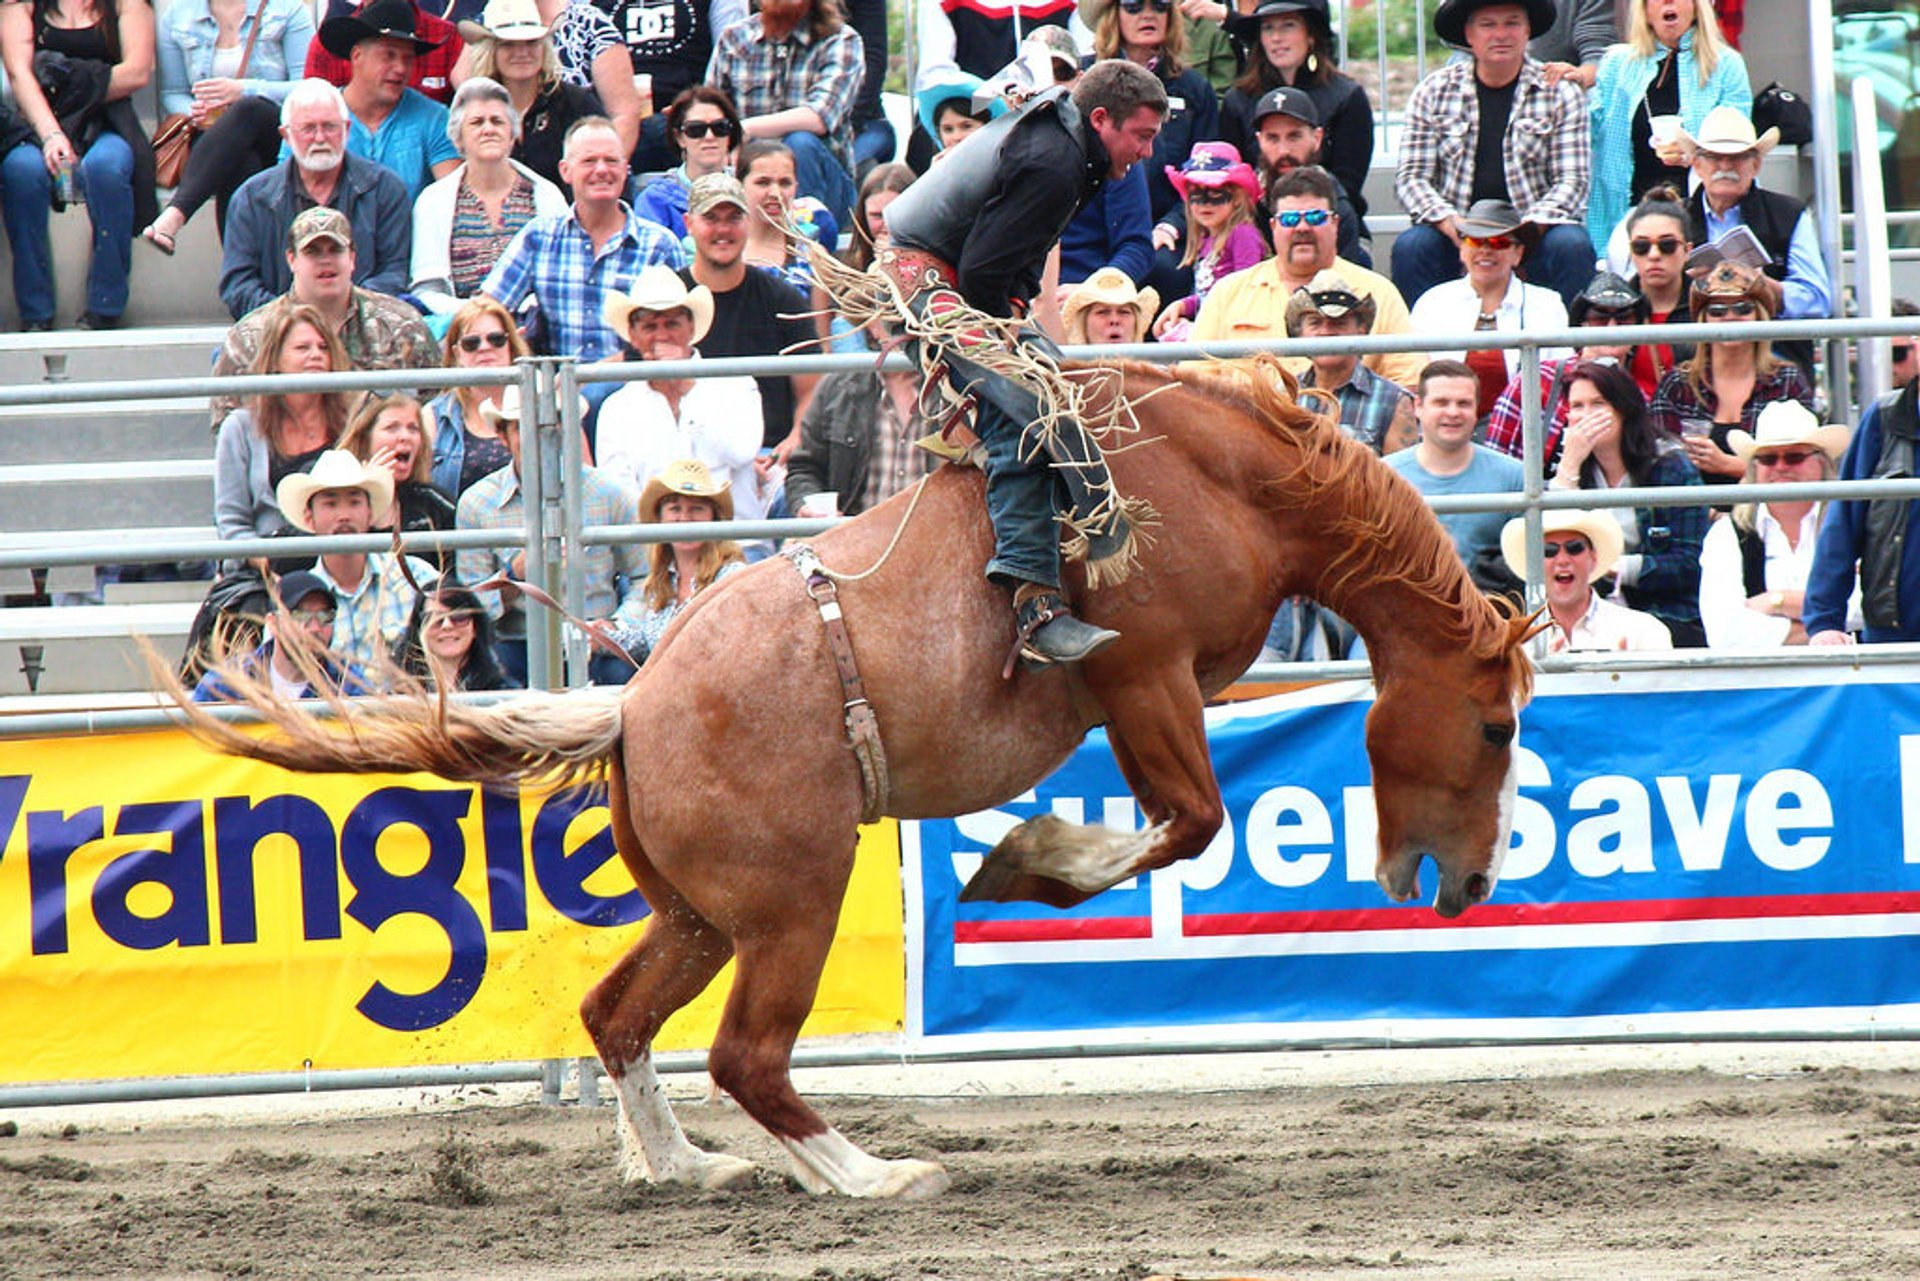 Cloverdale Rodeo and Country Fair in Vancouver - Best Season 2019